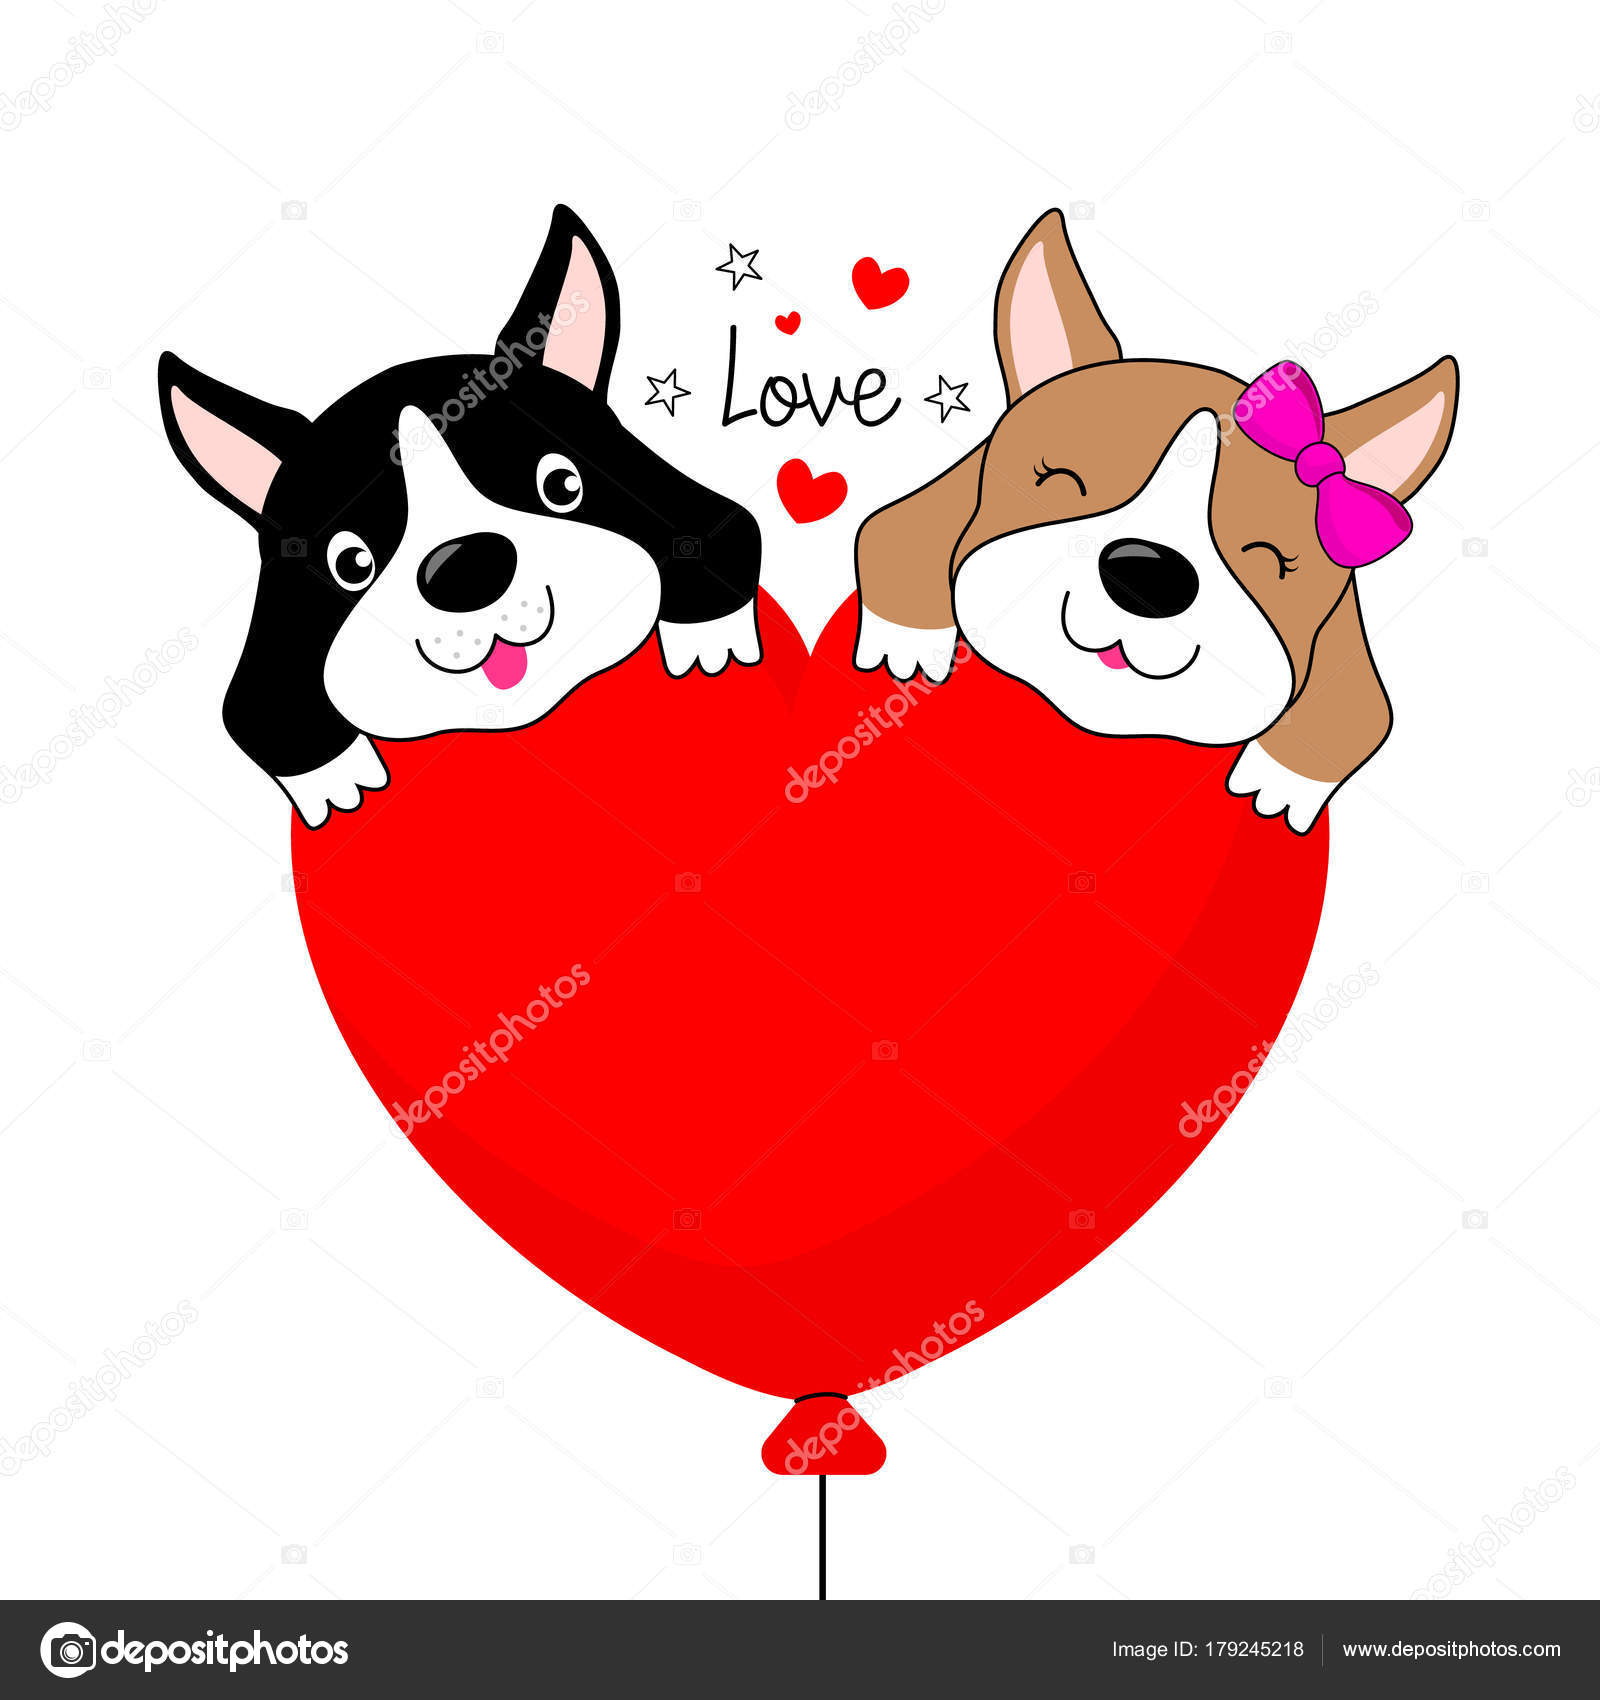 funny cartoon dogs characters two dogs love heart shape balloon